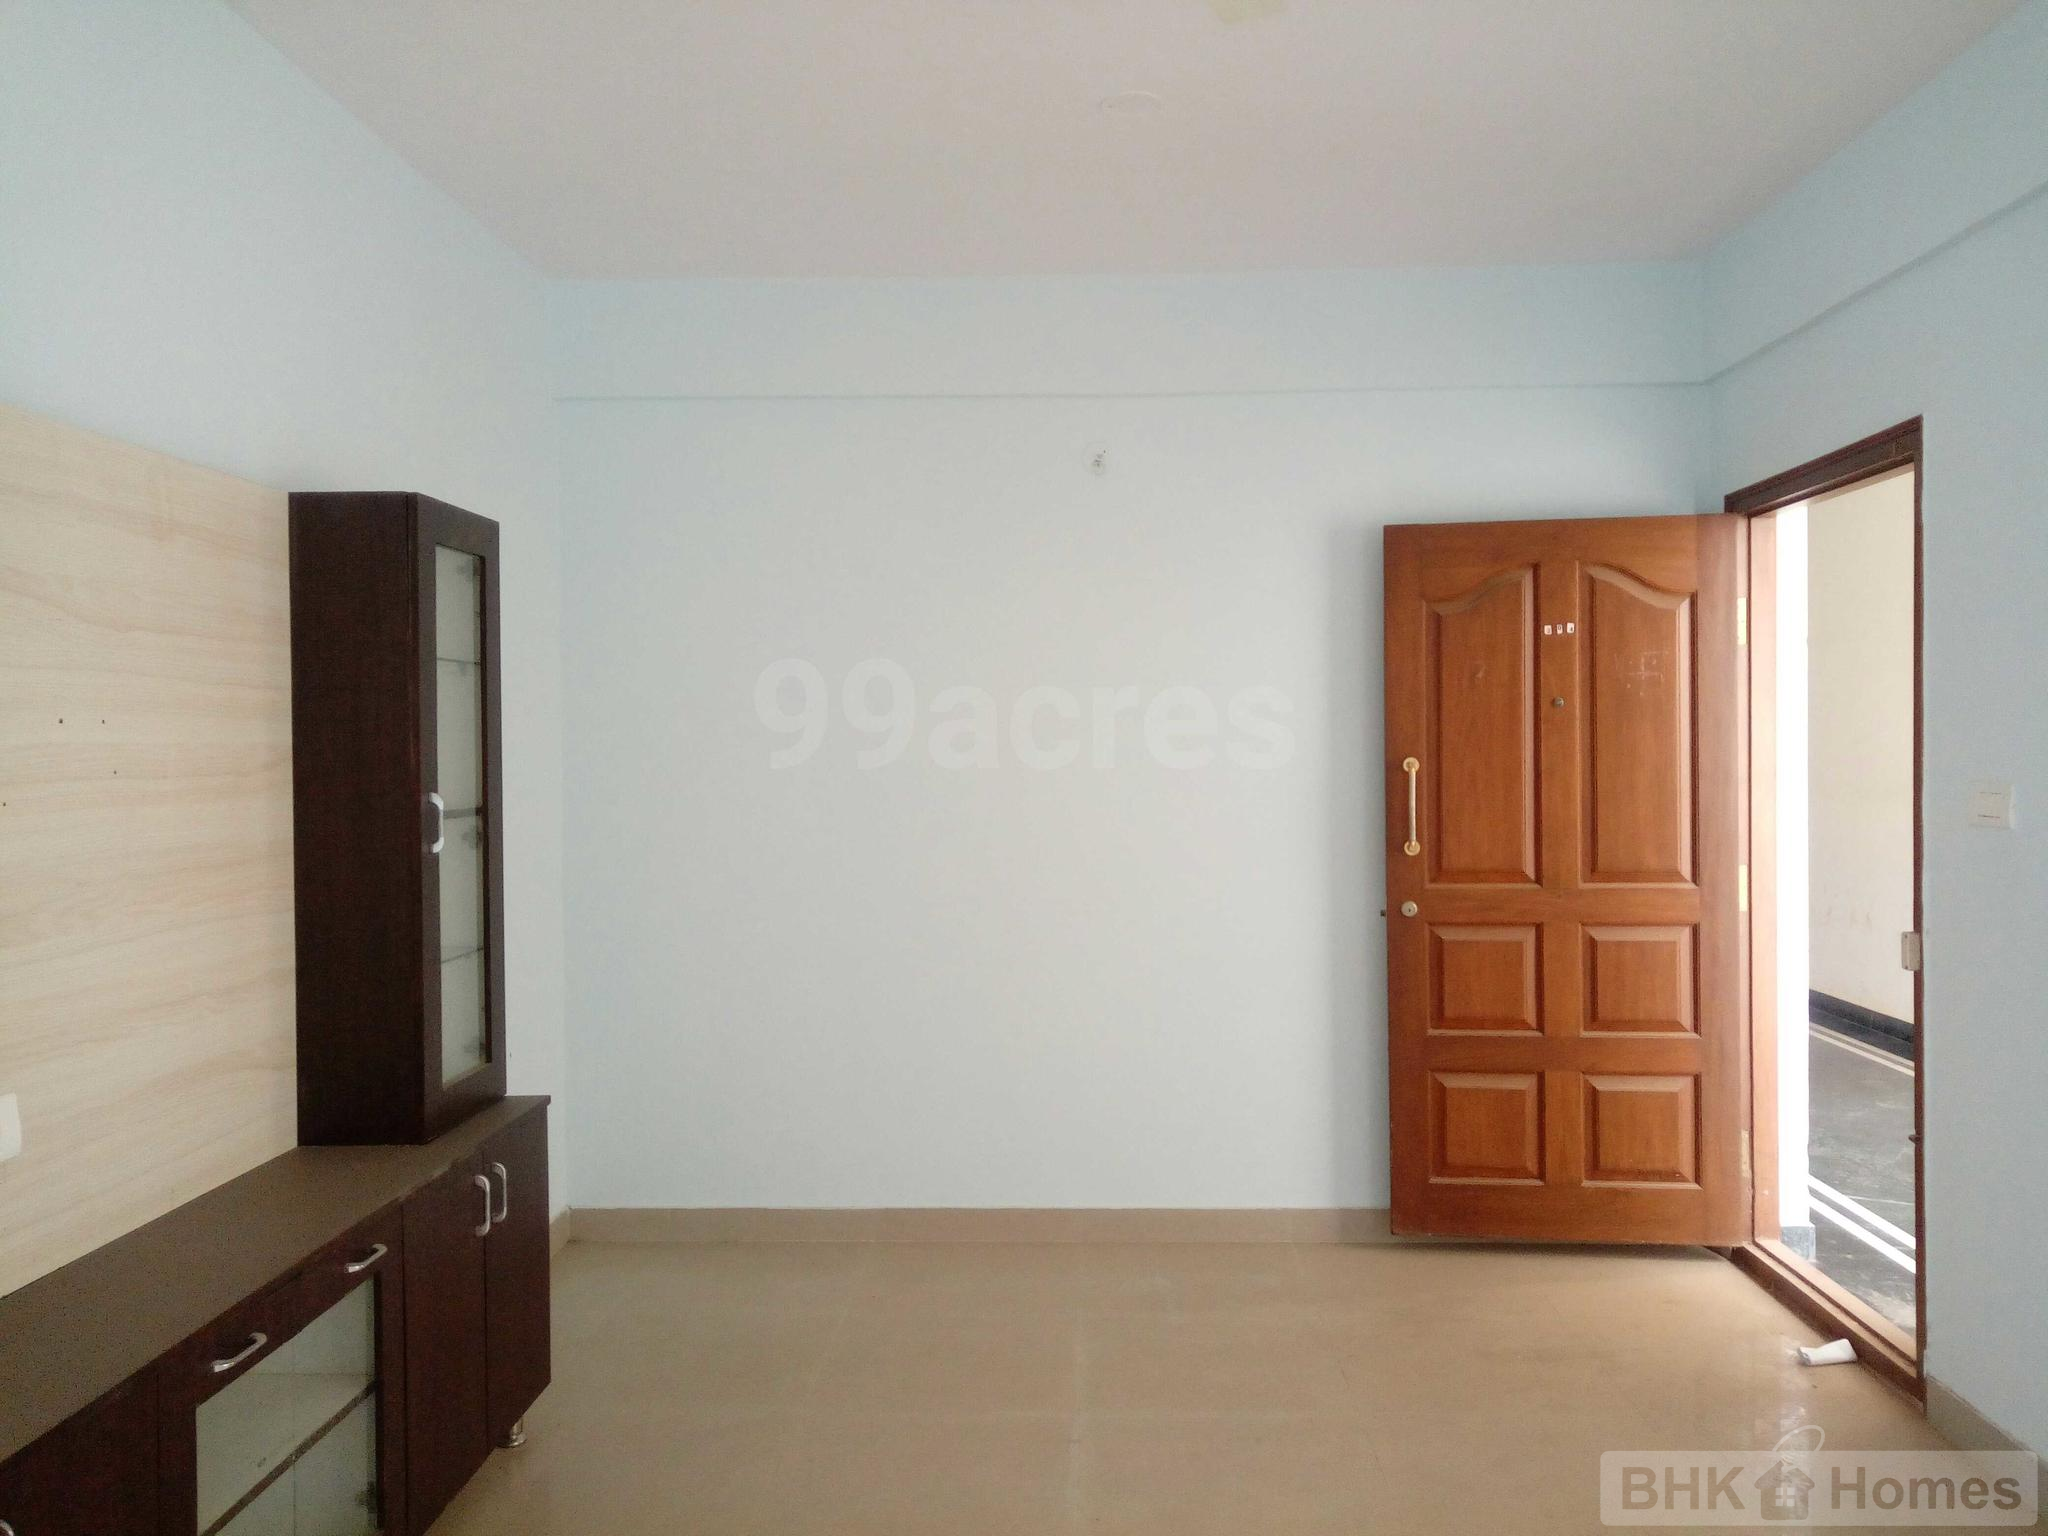 2 BHK Residential Apartment for Sale in Yelahanka,